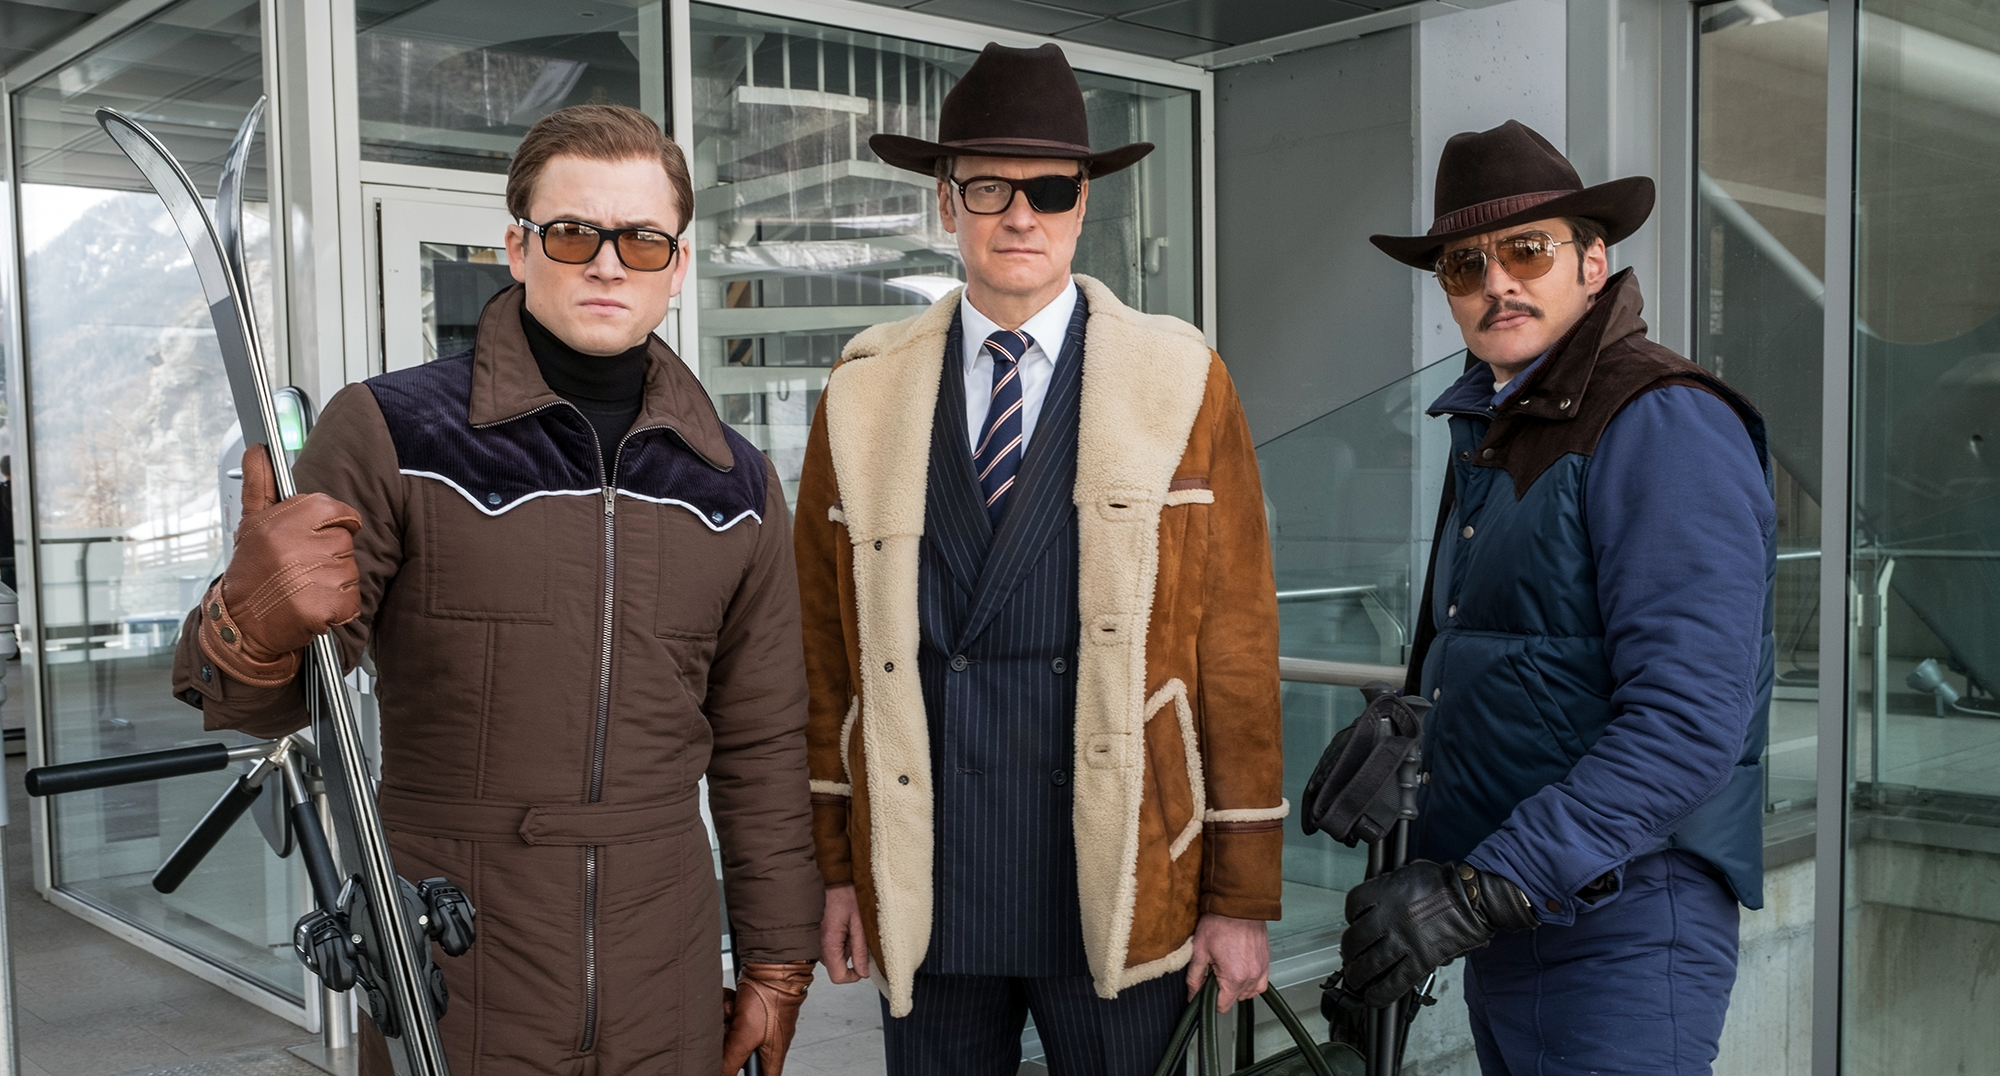 https://cinemaplanet.pt/wp-content/uploads/2017/09/kingsman.jpg